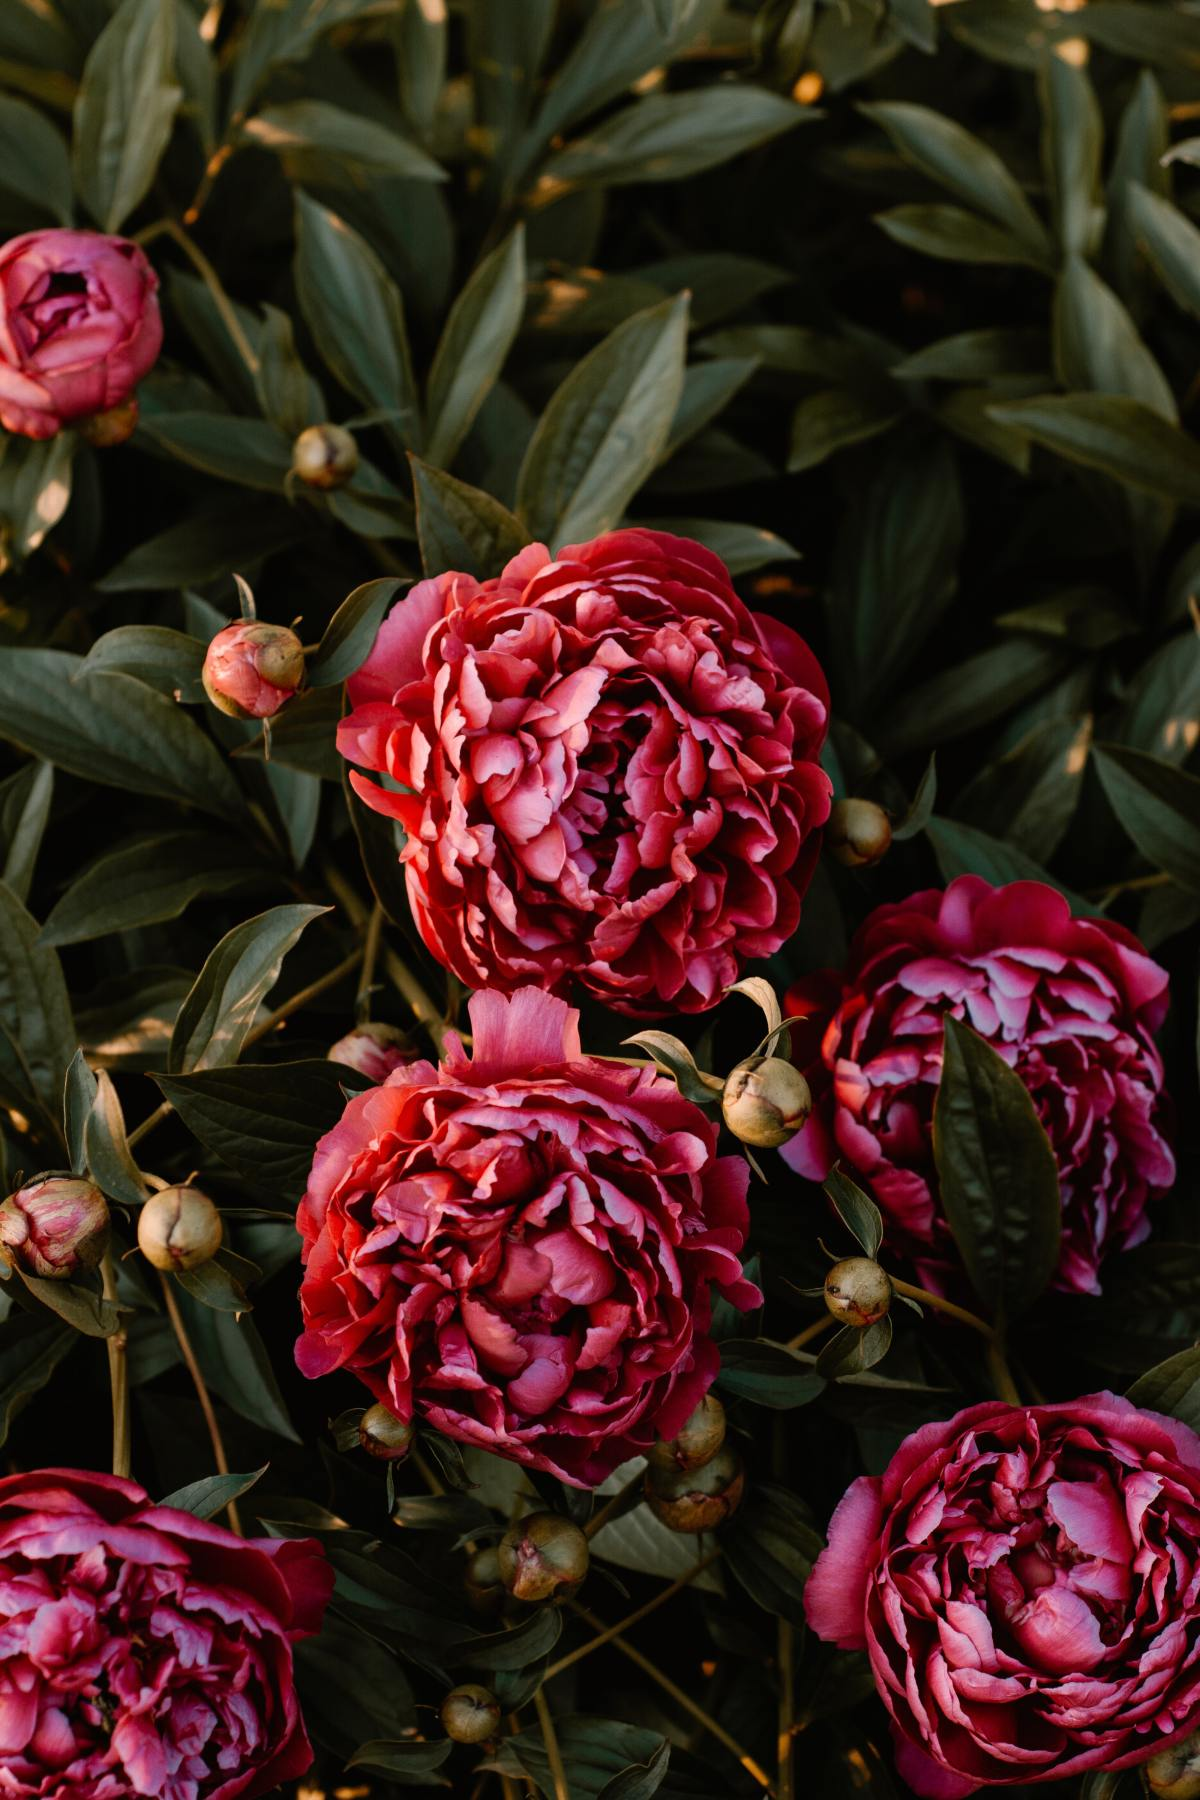 Can Peonies Open WithoutAnts?